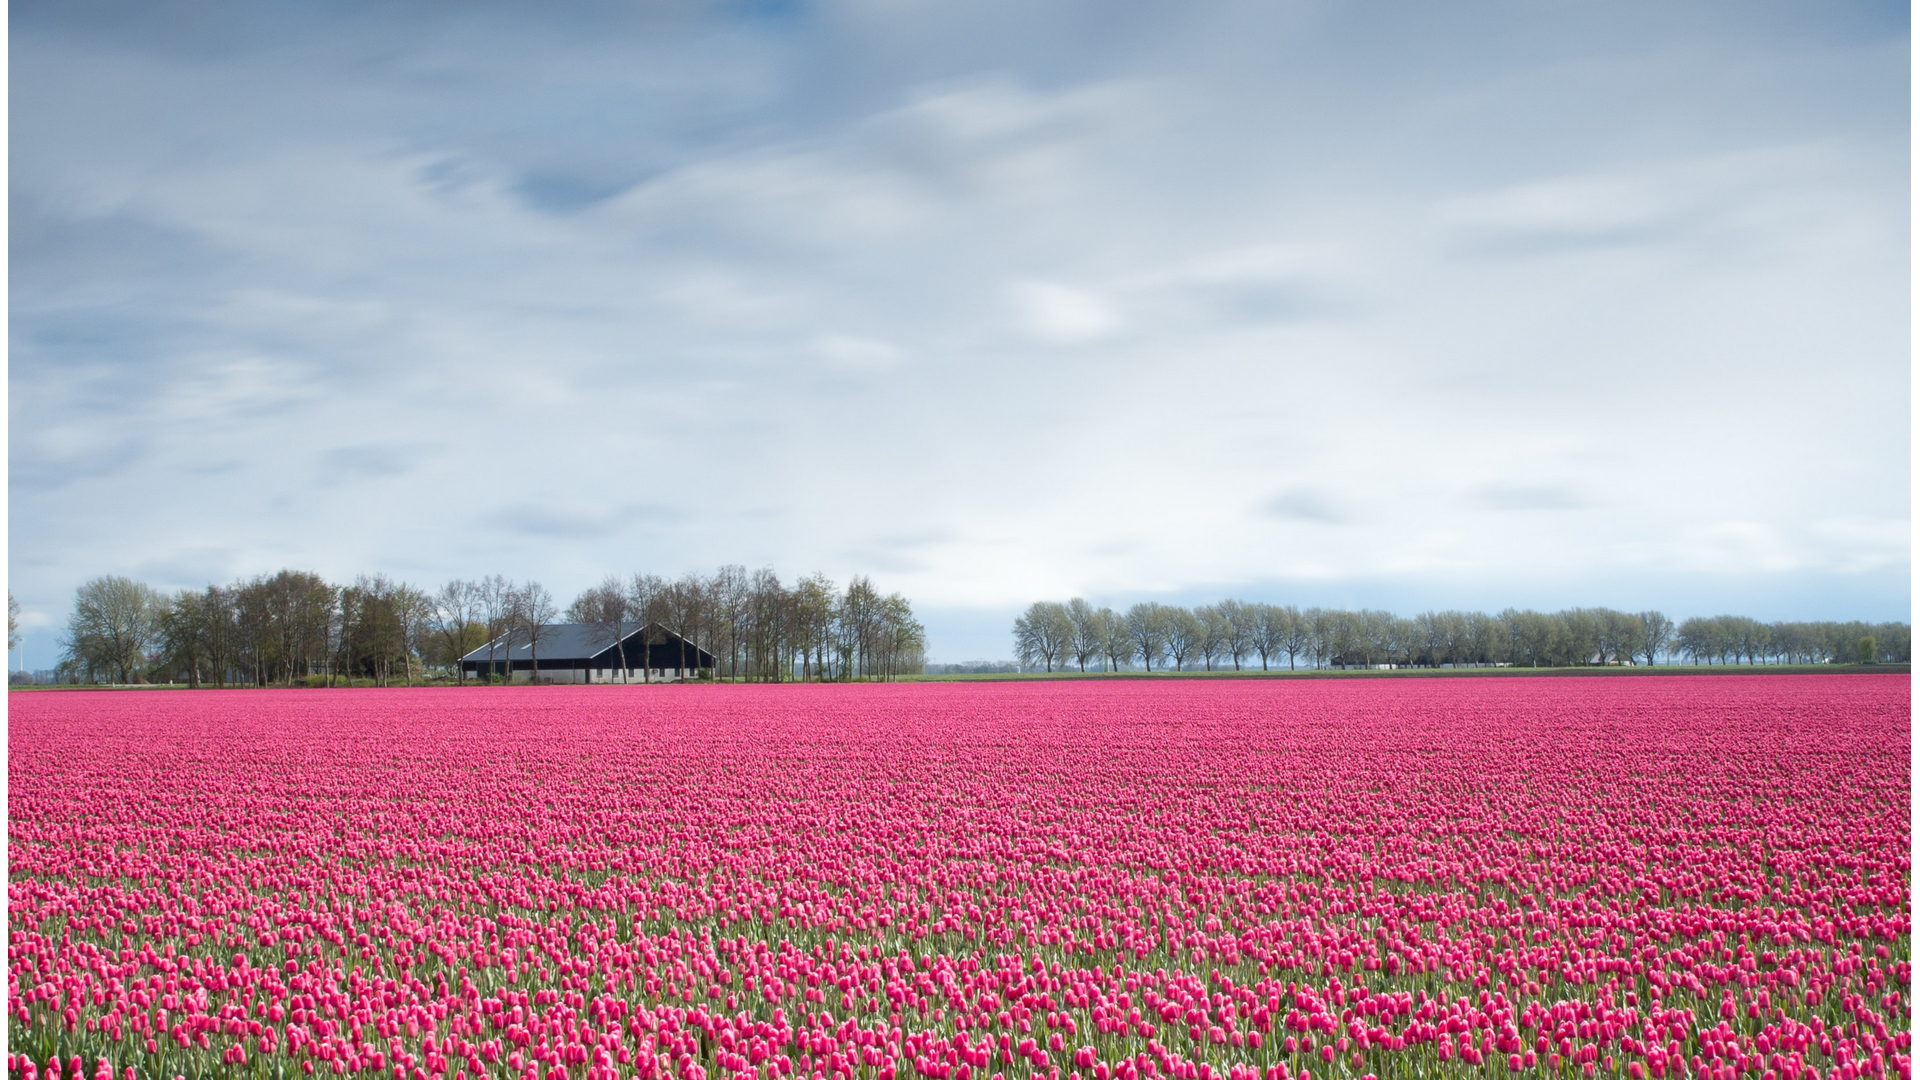 A view in Netherlands